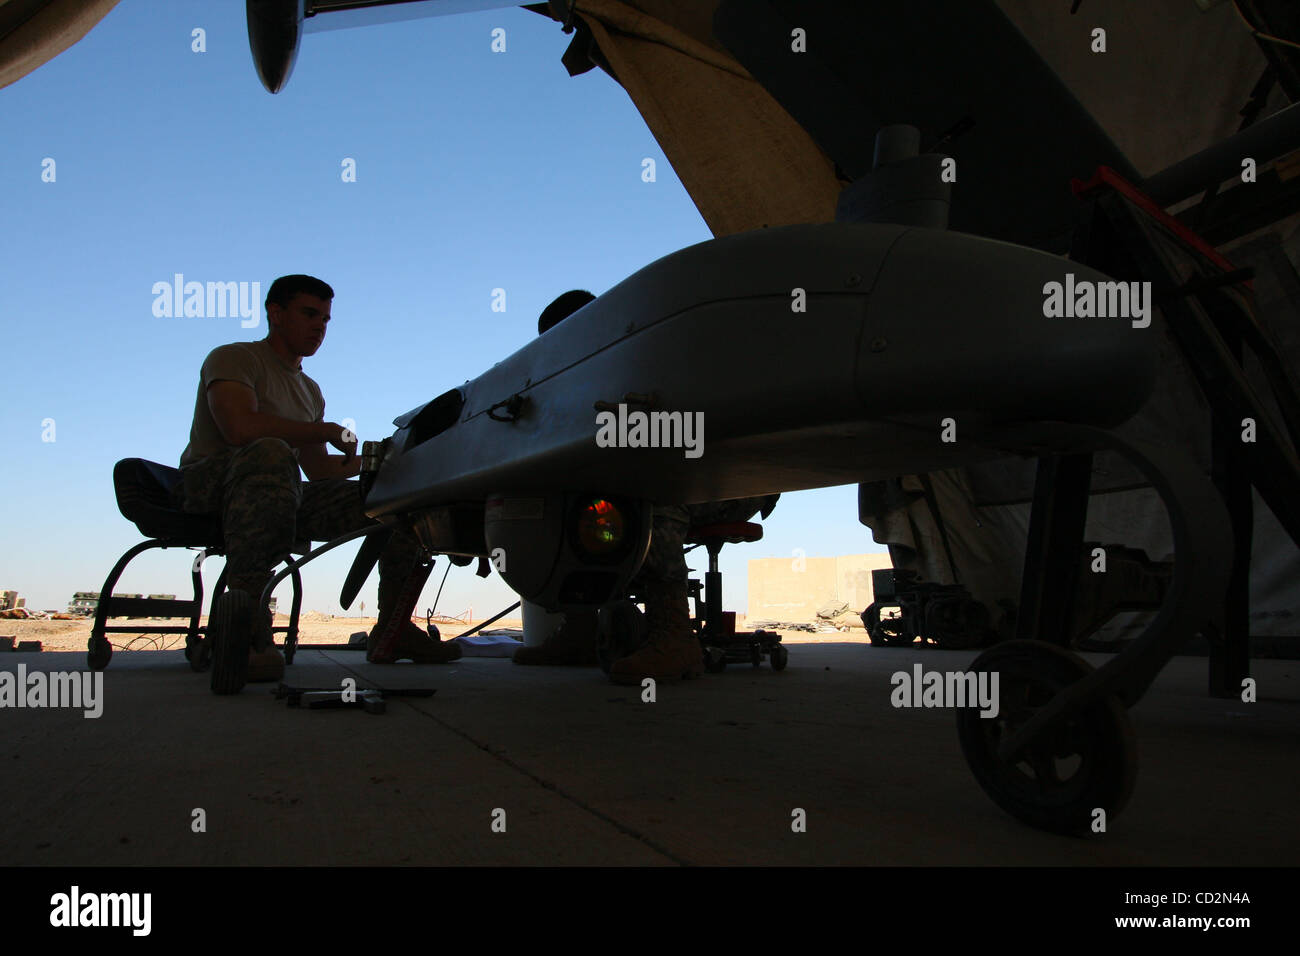 Mar 13, 2008 - Baghdad, Iraq - US soldiers work on an unmanned aerial vehicle inside a maintenance tent next to - Stock Image